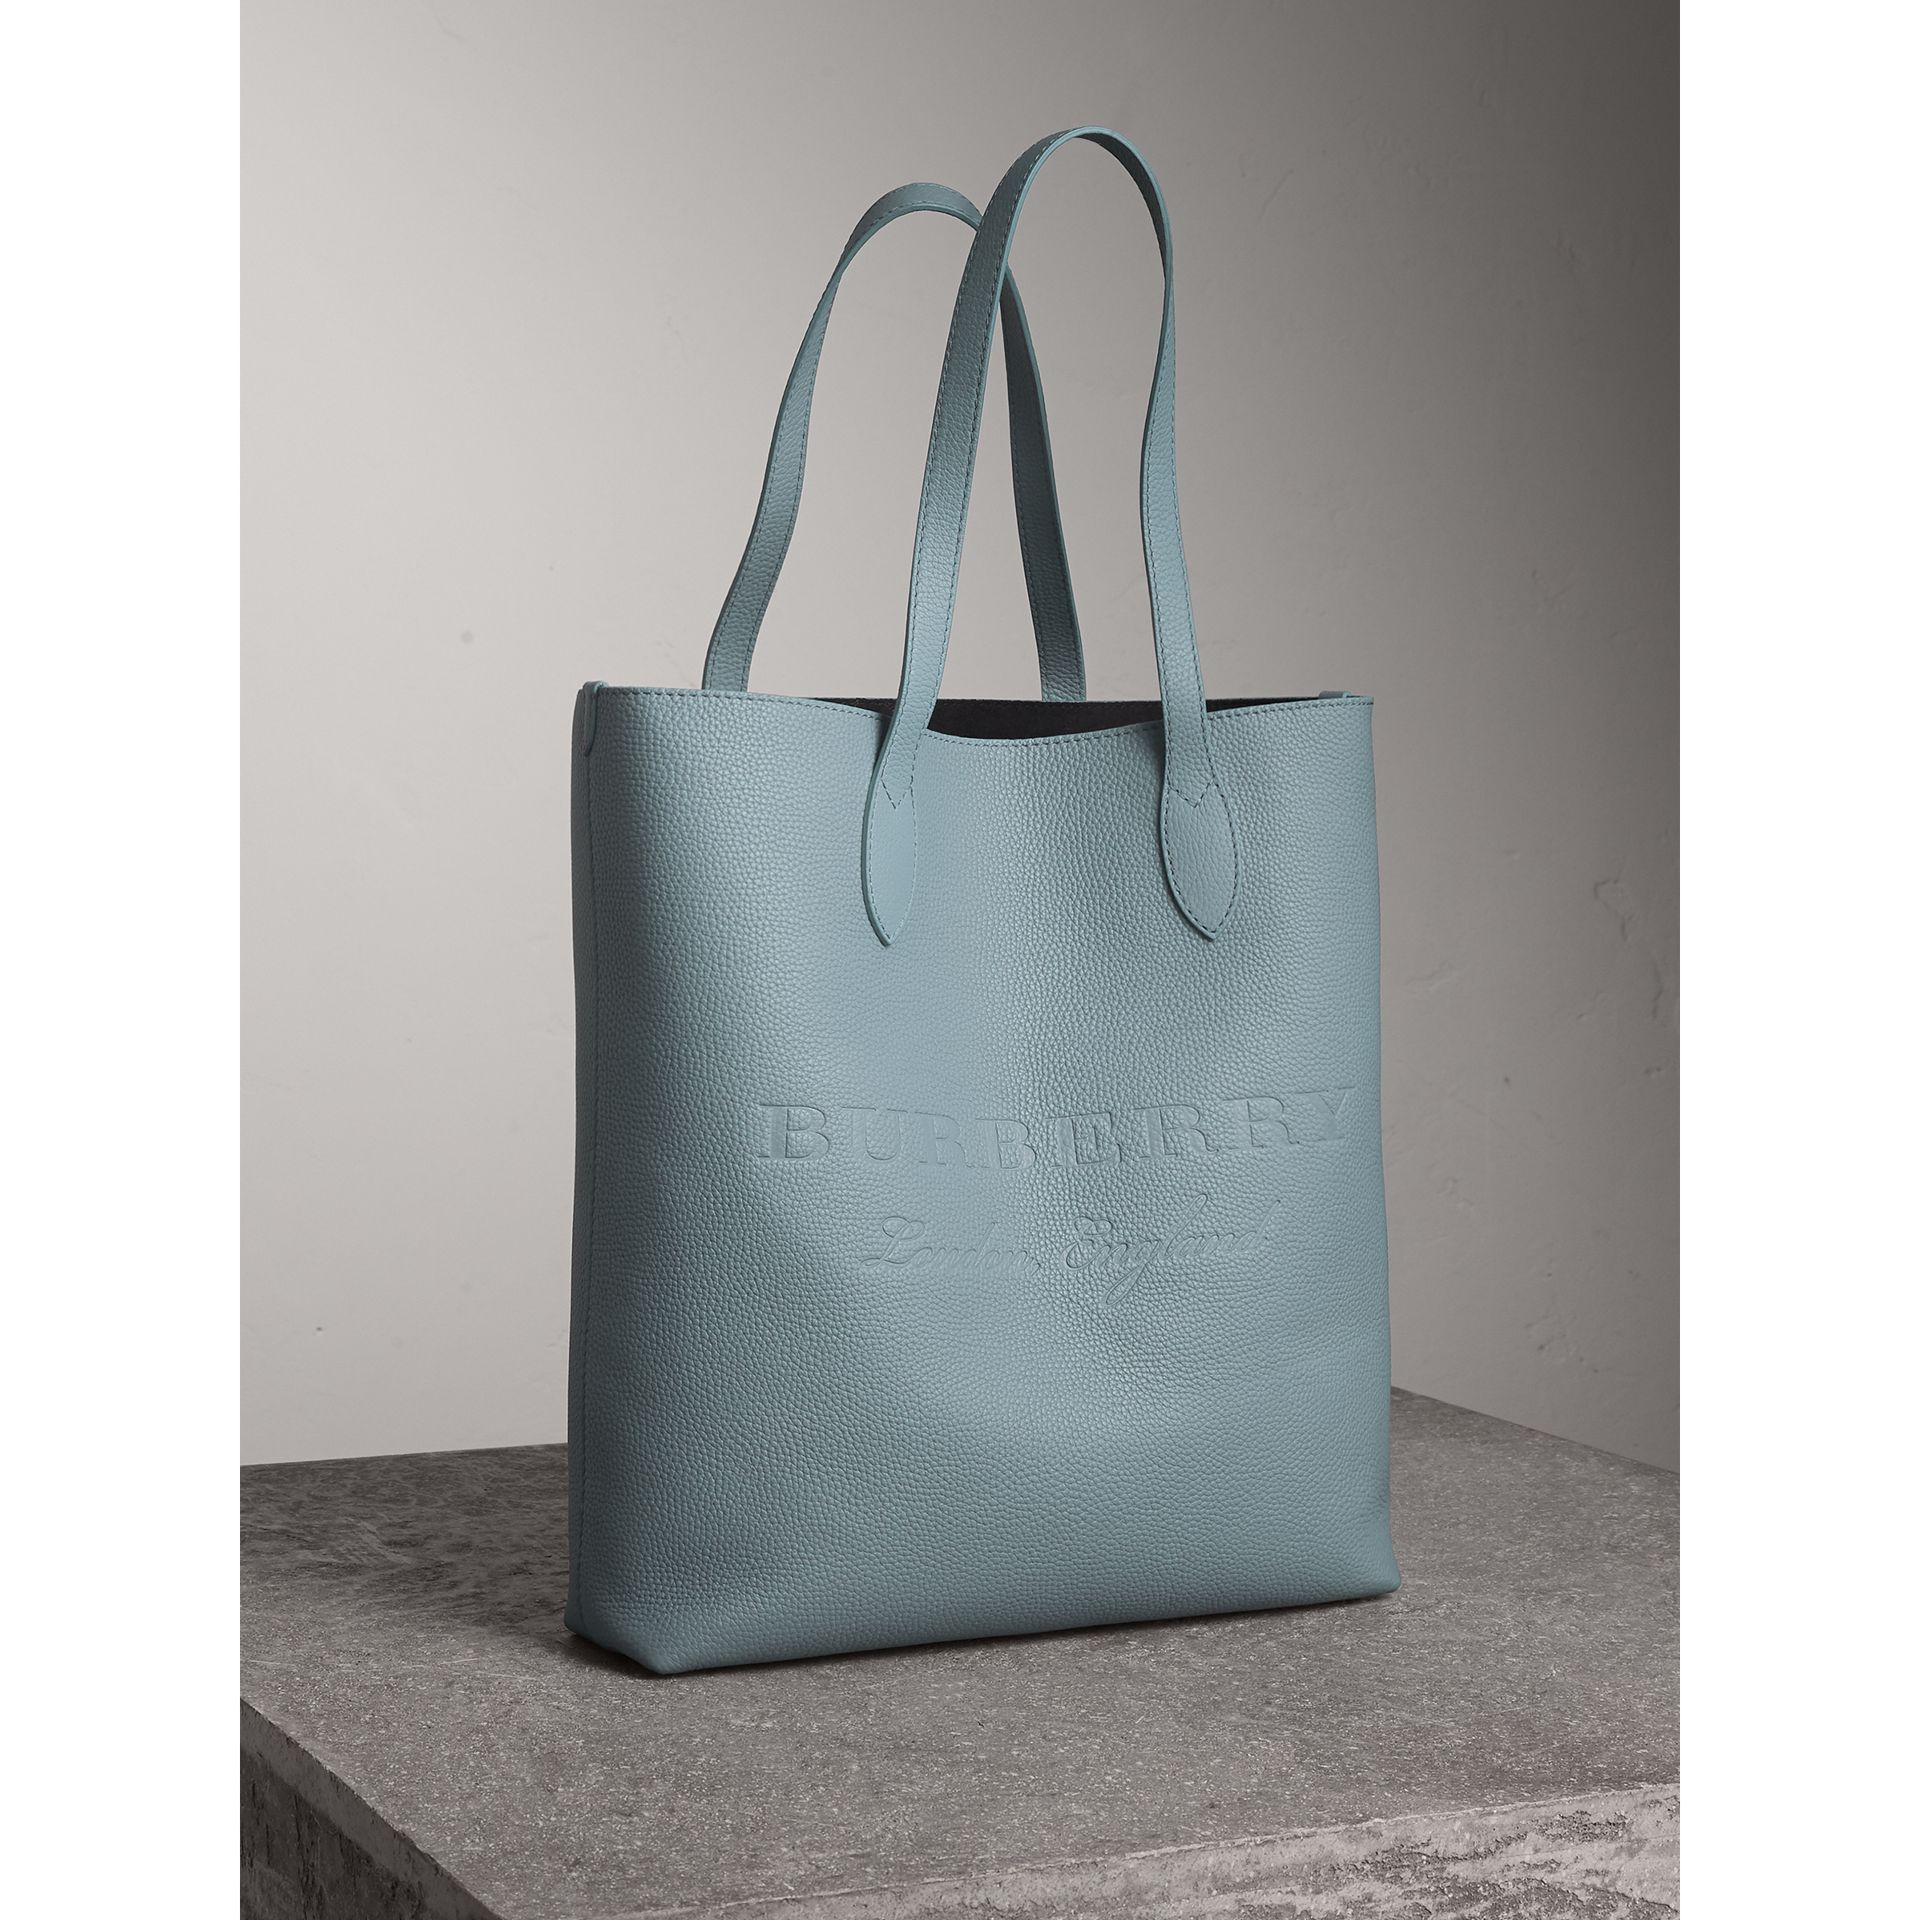 Medium Embossed Leather Tote in Dusty Teal Blue | Burberry - gallery image 7